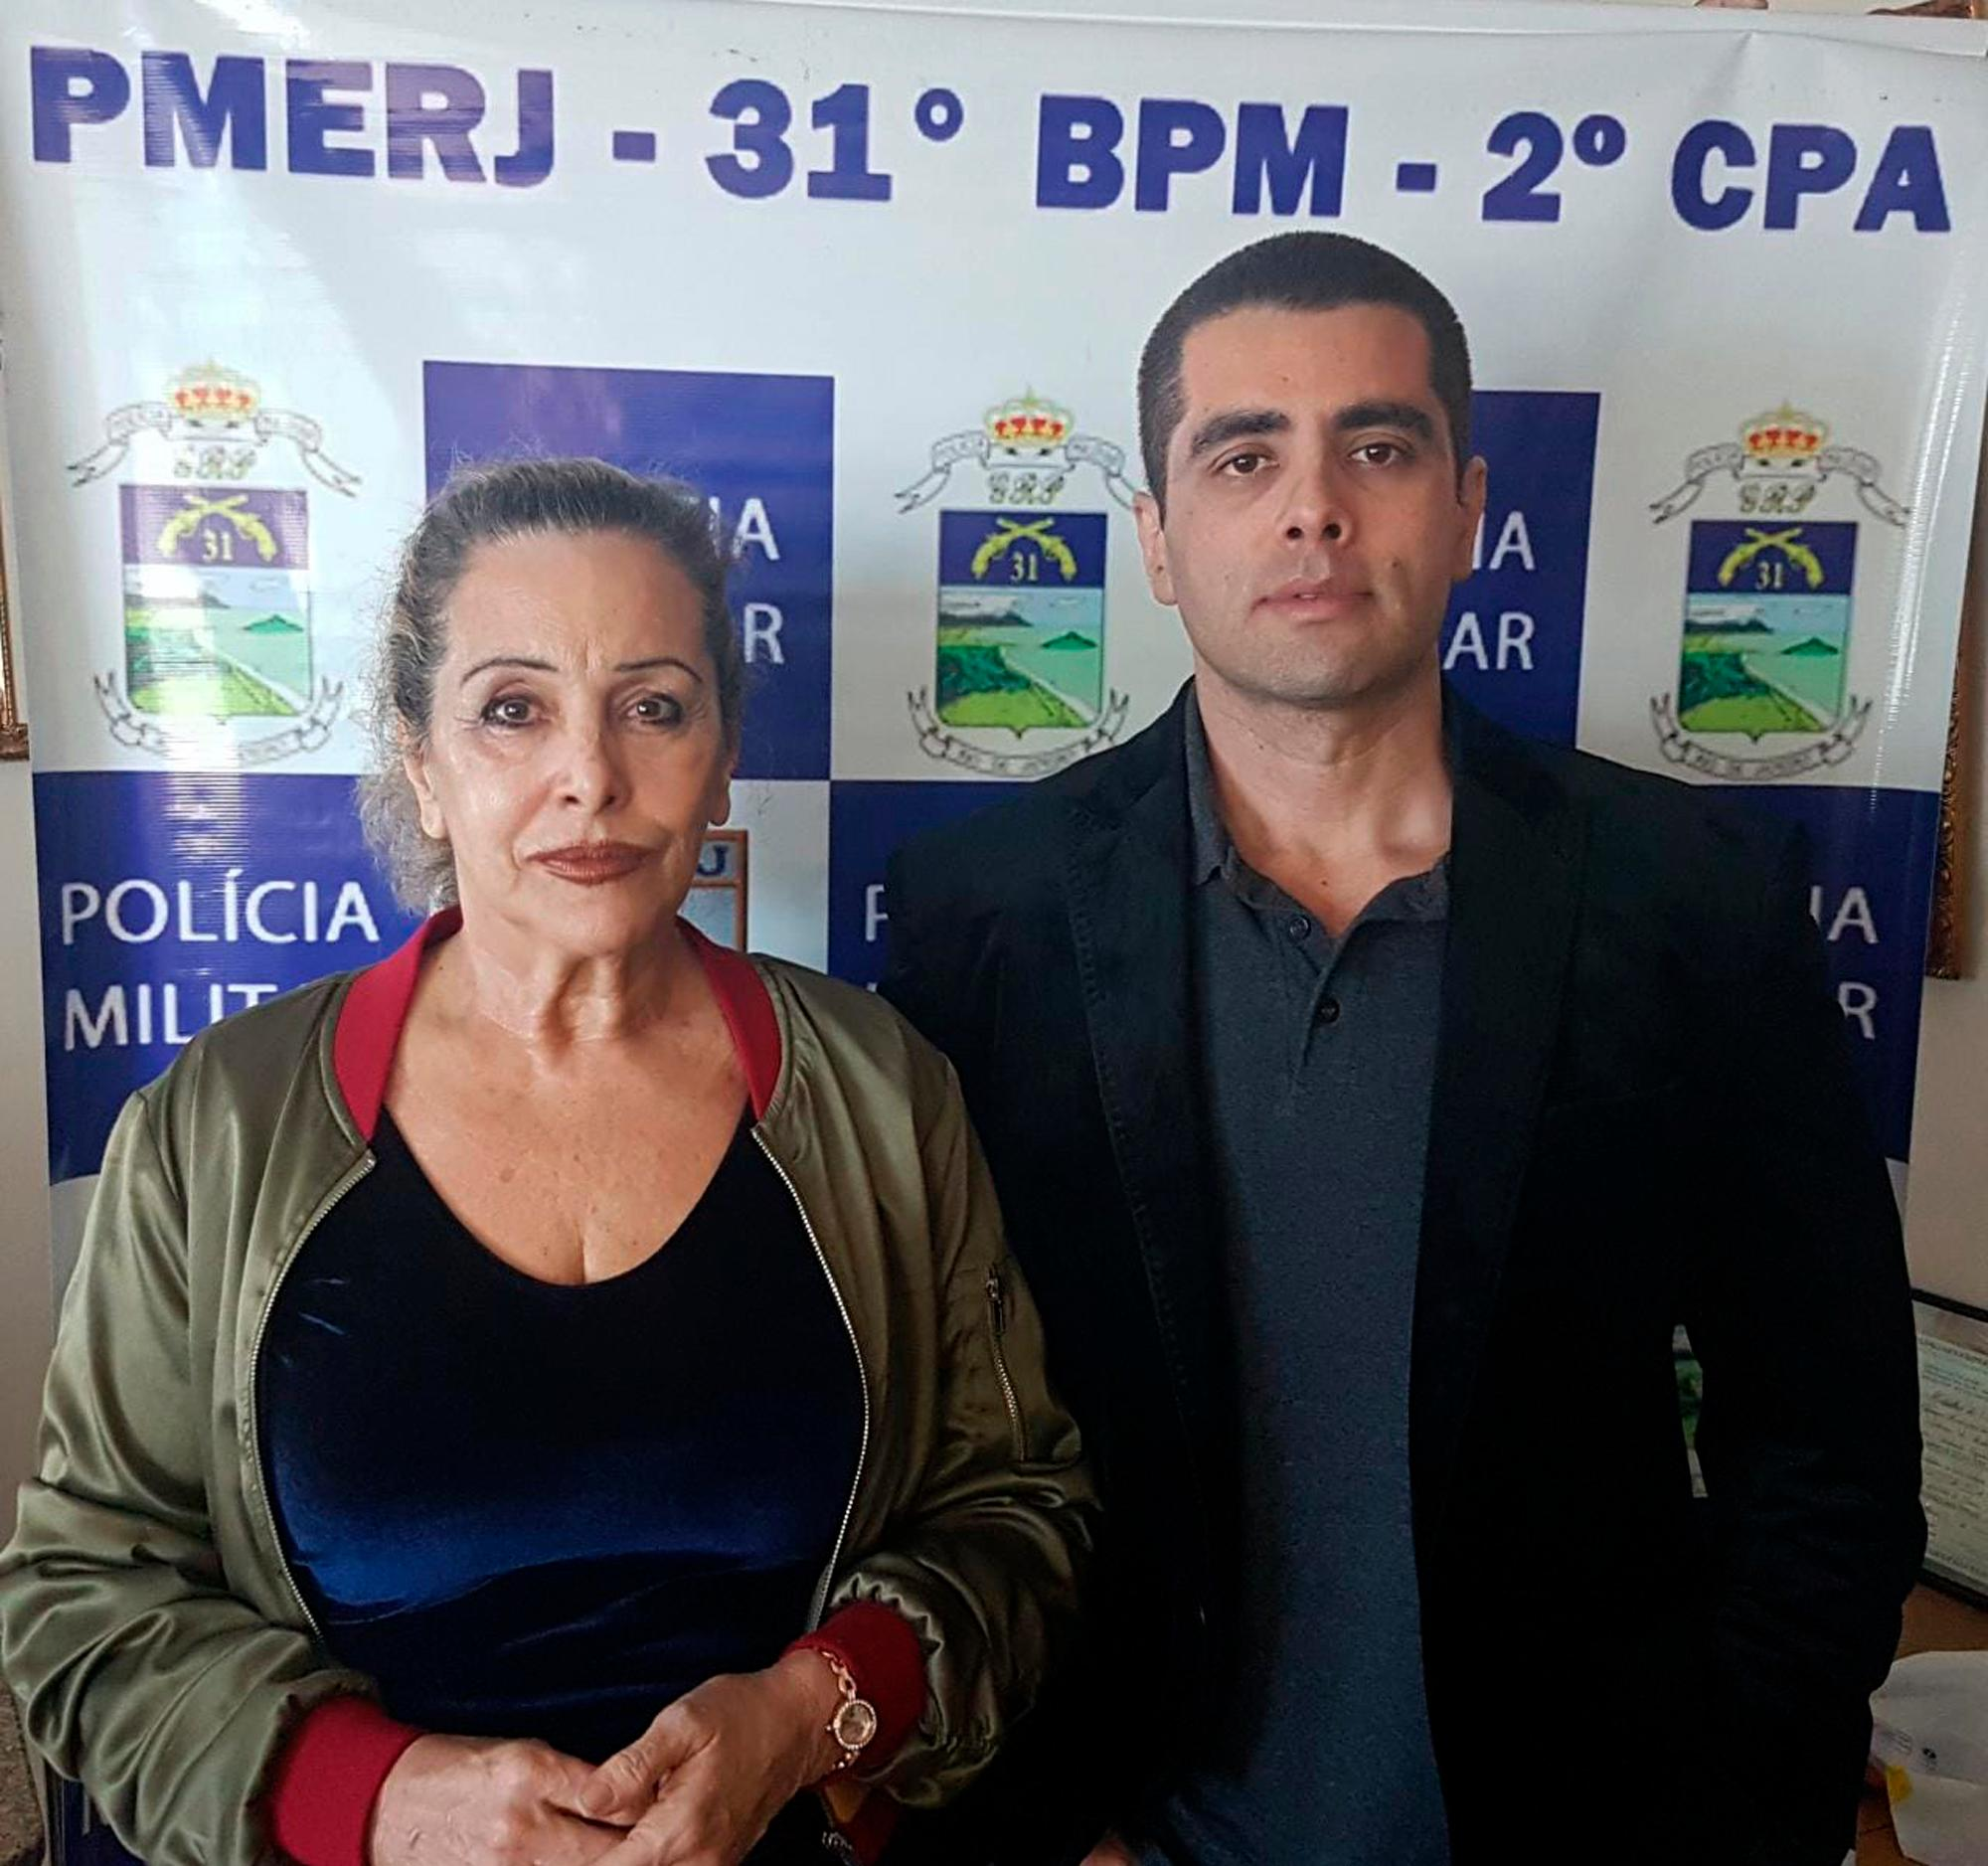 "This photo released by the Rio de Janeiro Military Police press office shows Dr. Denis Cesar Barros Furtado, right, and his mother Maria de Fatima Barros, who were arrested in Rio de Janeiro, Brazil, Thursday, July 19, 2018. The 45-year-old buttocks enlargement specialist, also known as Dr. ""Bumbum"" or Dr. Fanny, fled when one of his female patients died after a surgical procedure conducted in his apartment. (AP Photo/Military Police Press Office)"